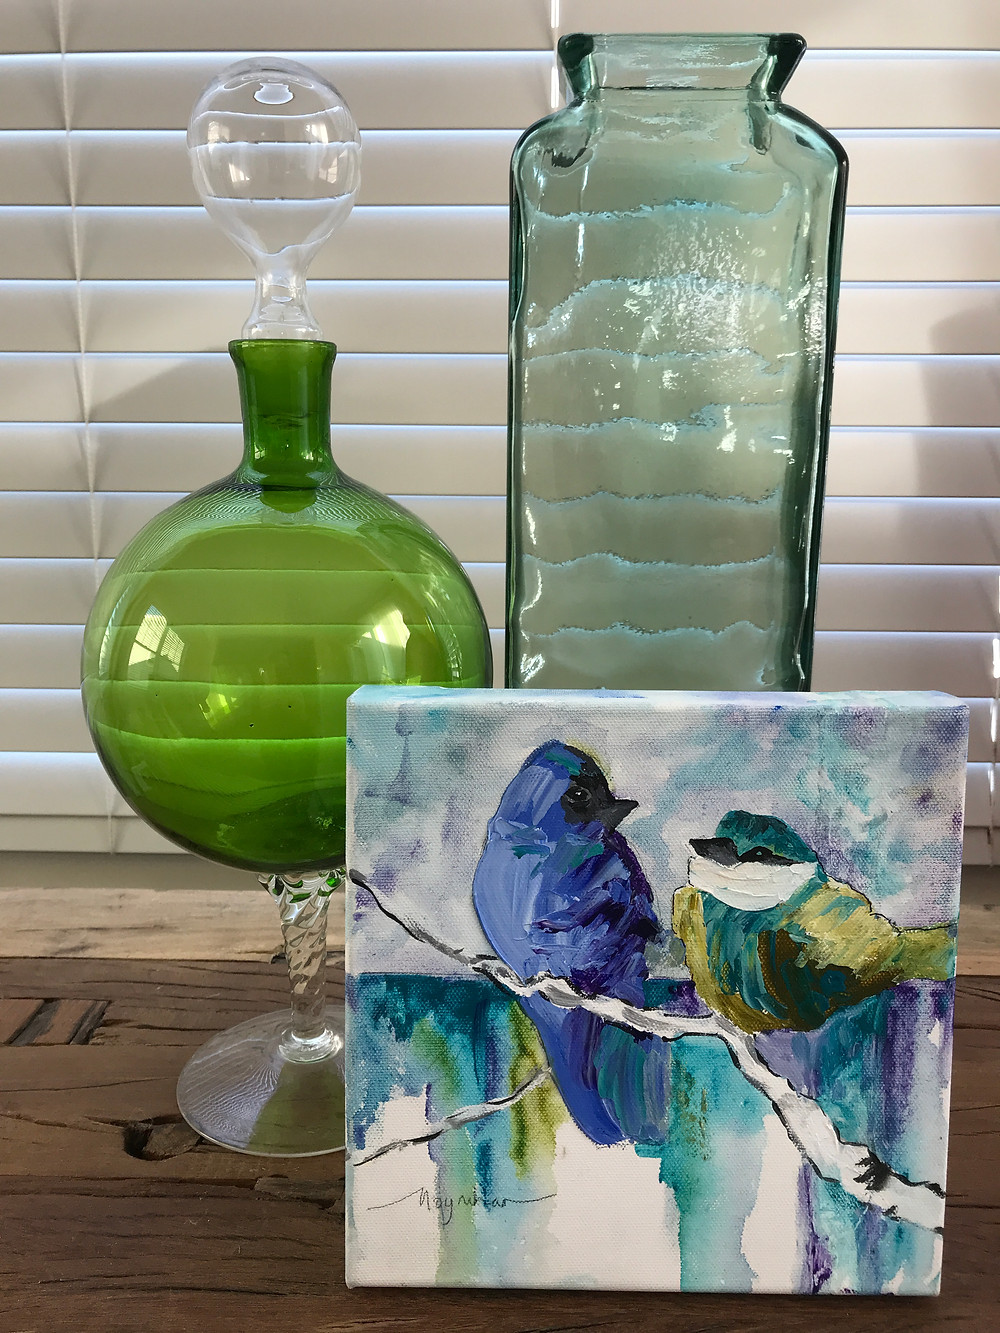 Analogous colors in home decor with original bird oil painting by Kate